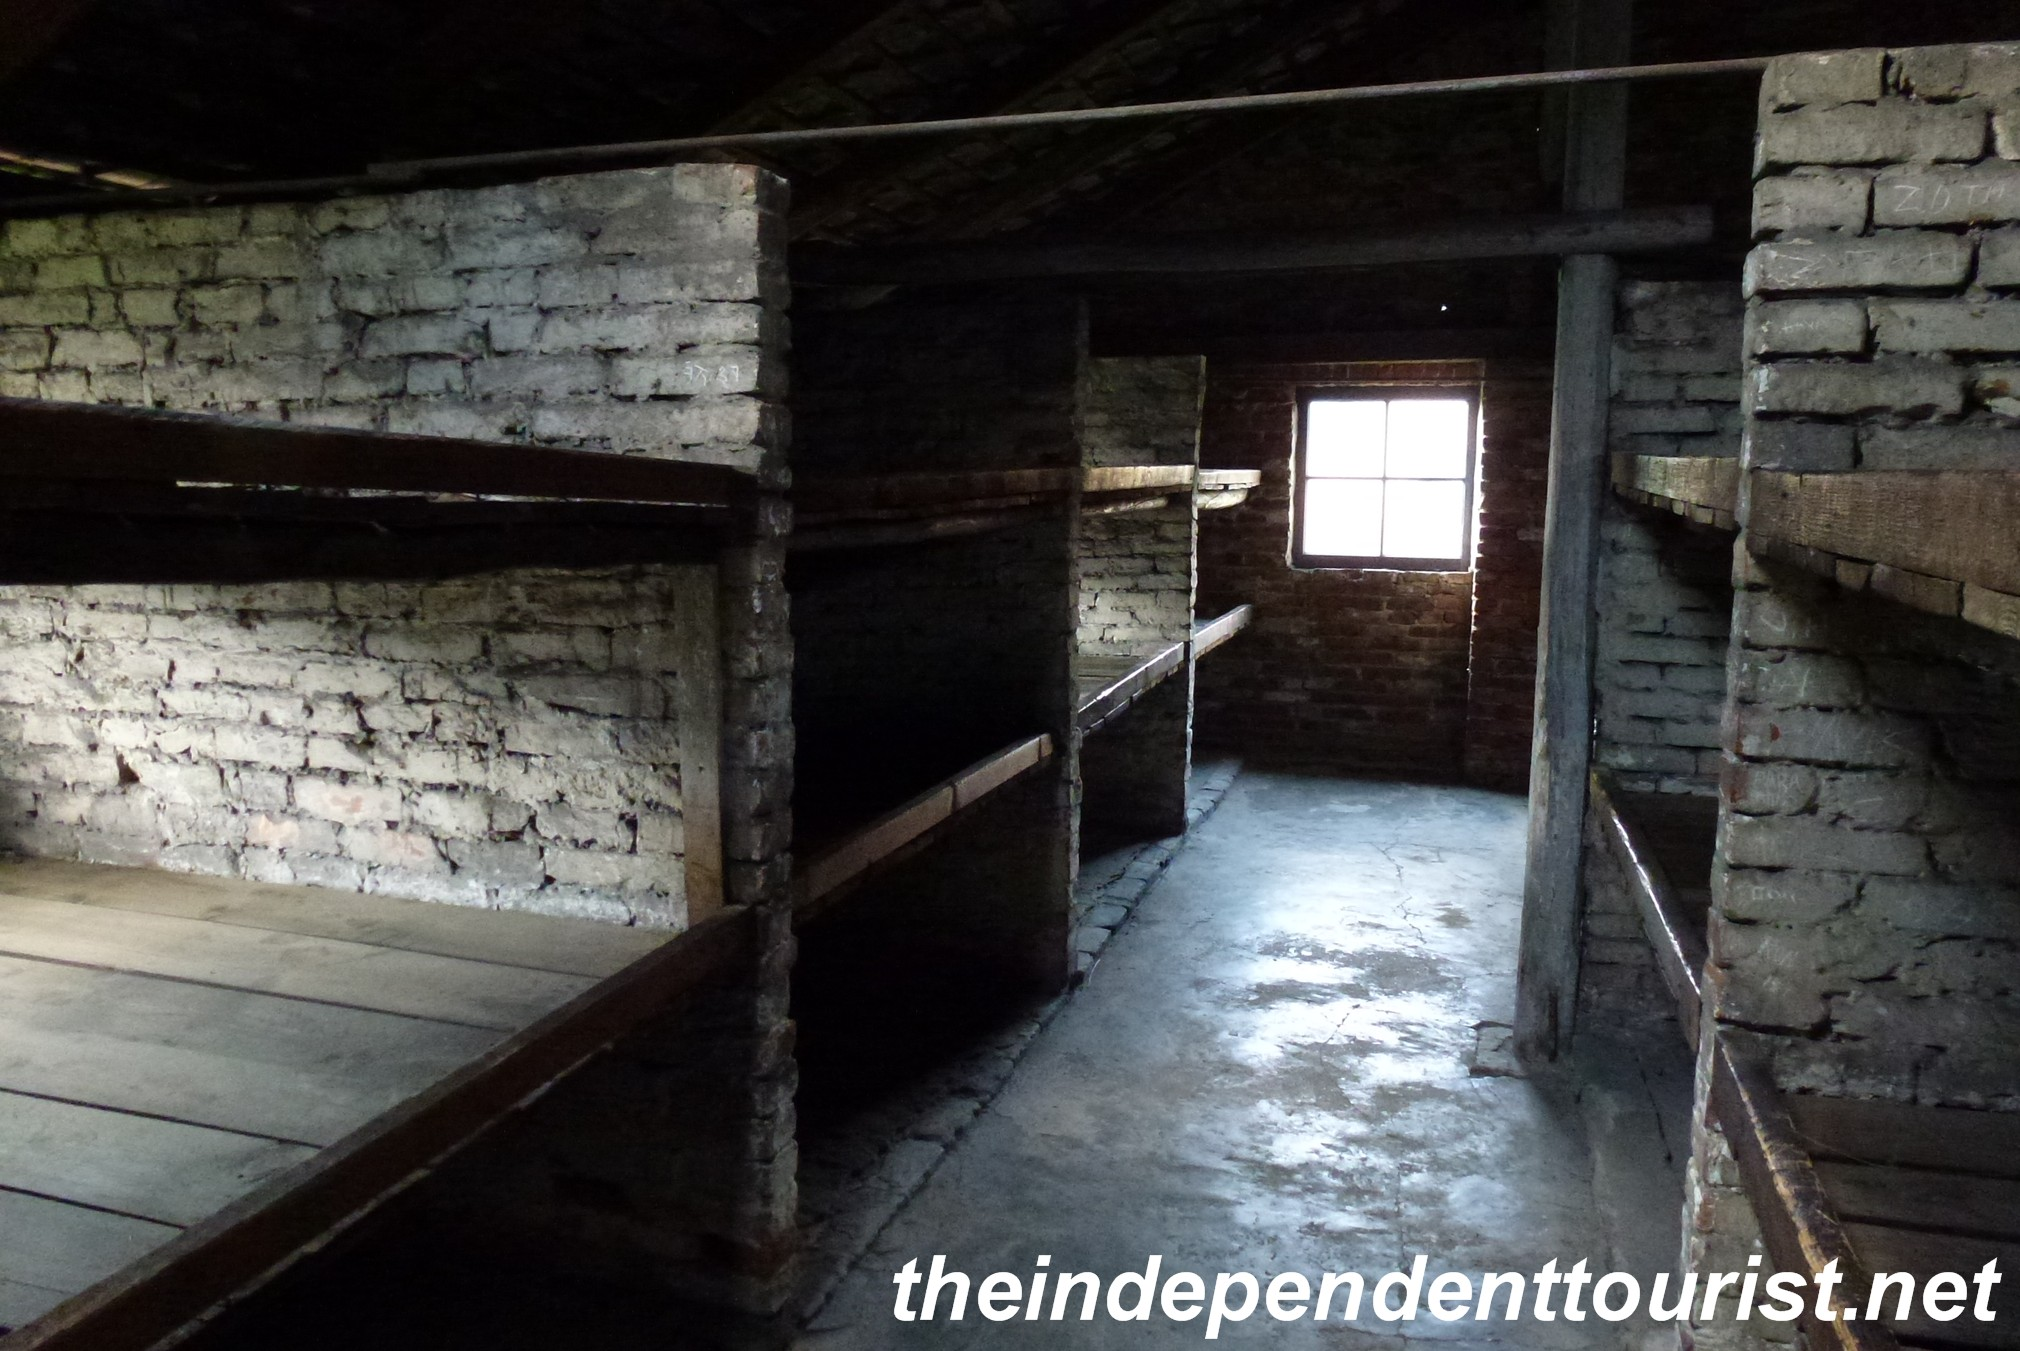 Auschwitz concentration camp | The Independent Tourist Barracks Holocaust